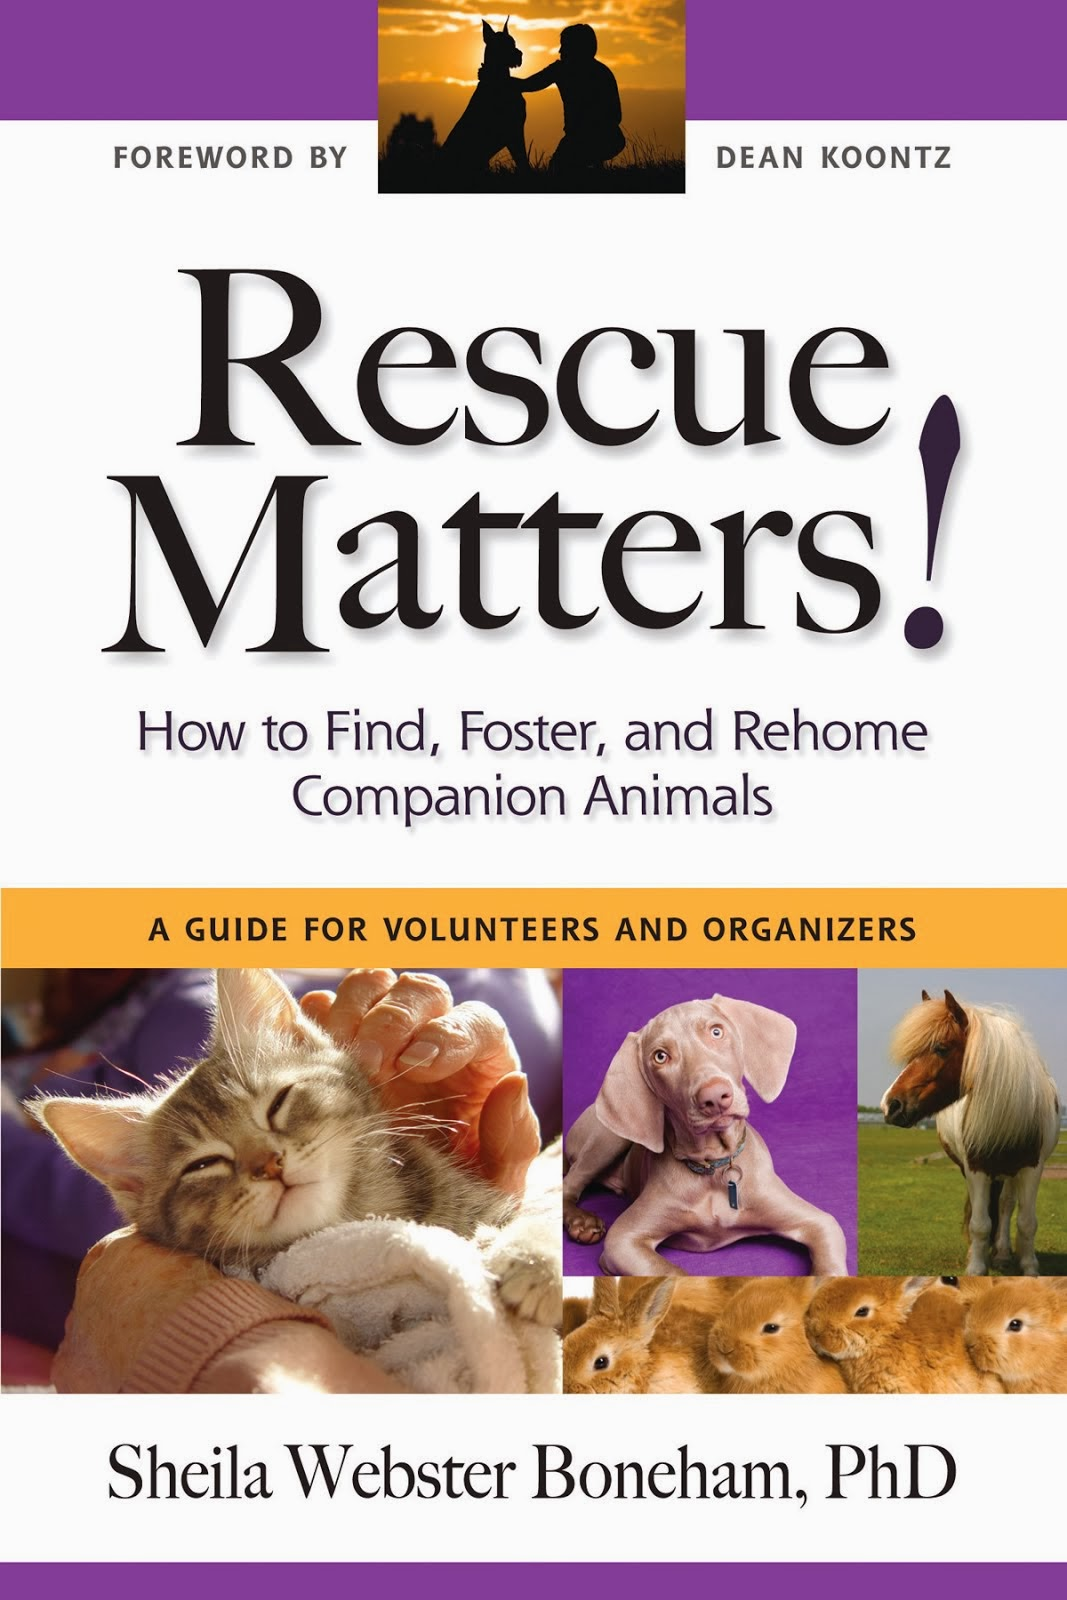 Rescue Matters: How to Find, Foster, and Rehome Companion Animals